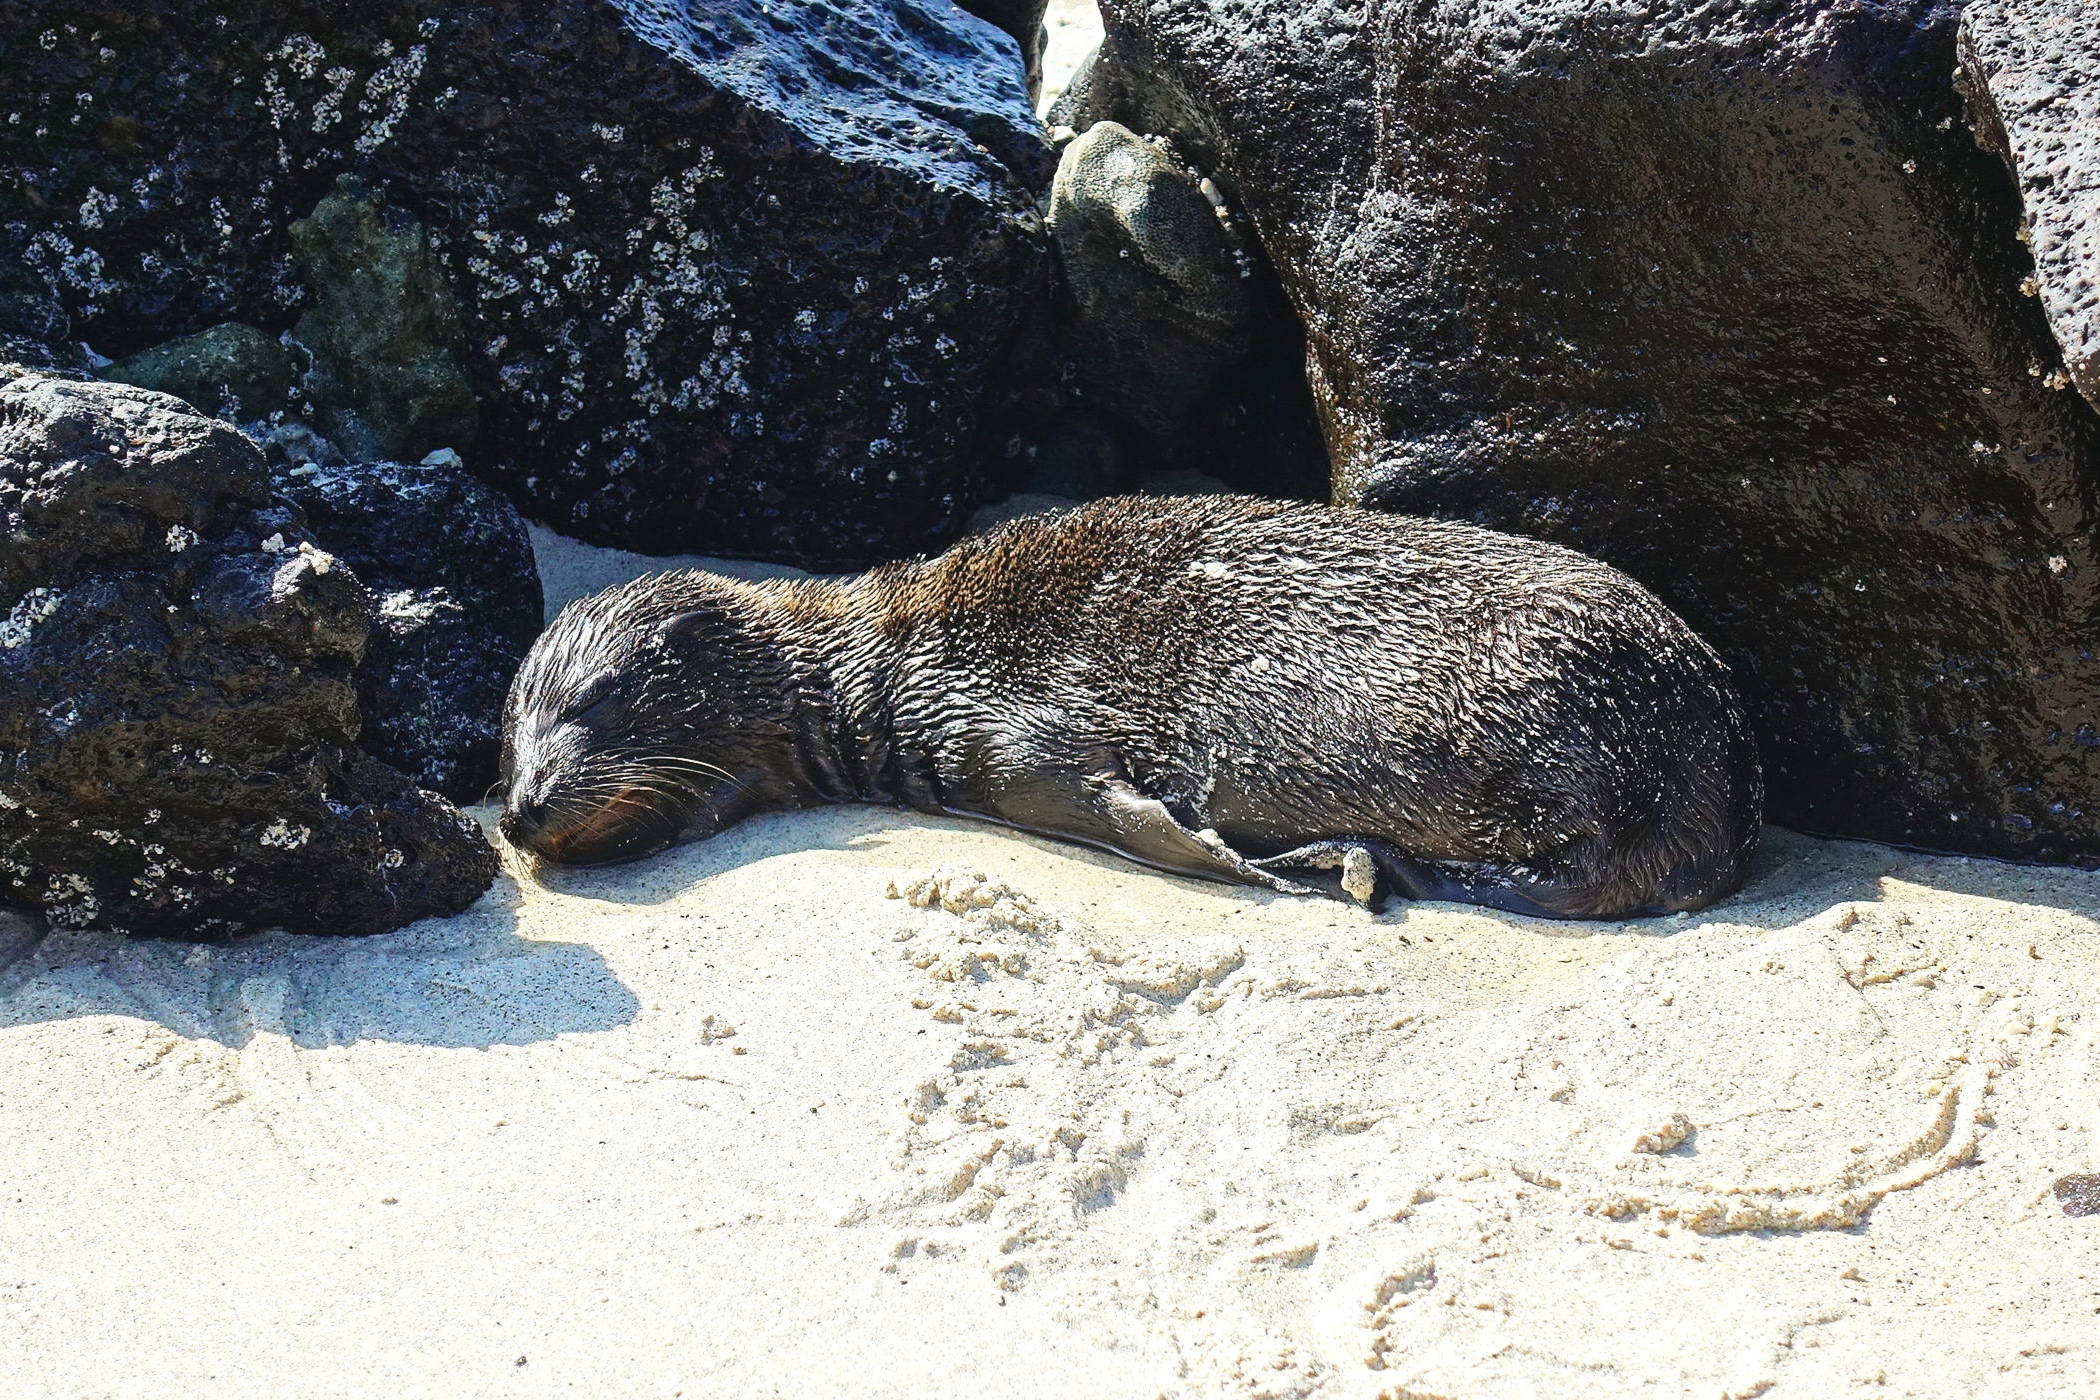 A baby seal nestled among the rocks.